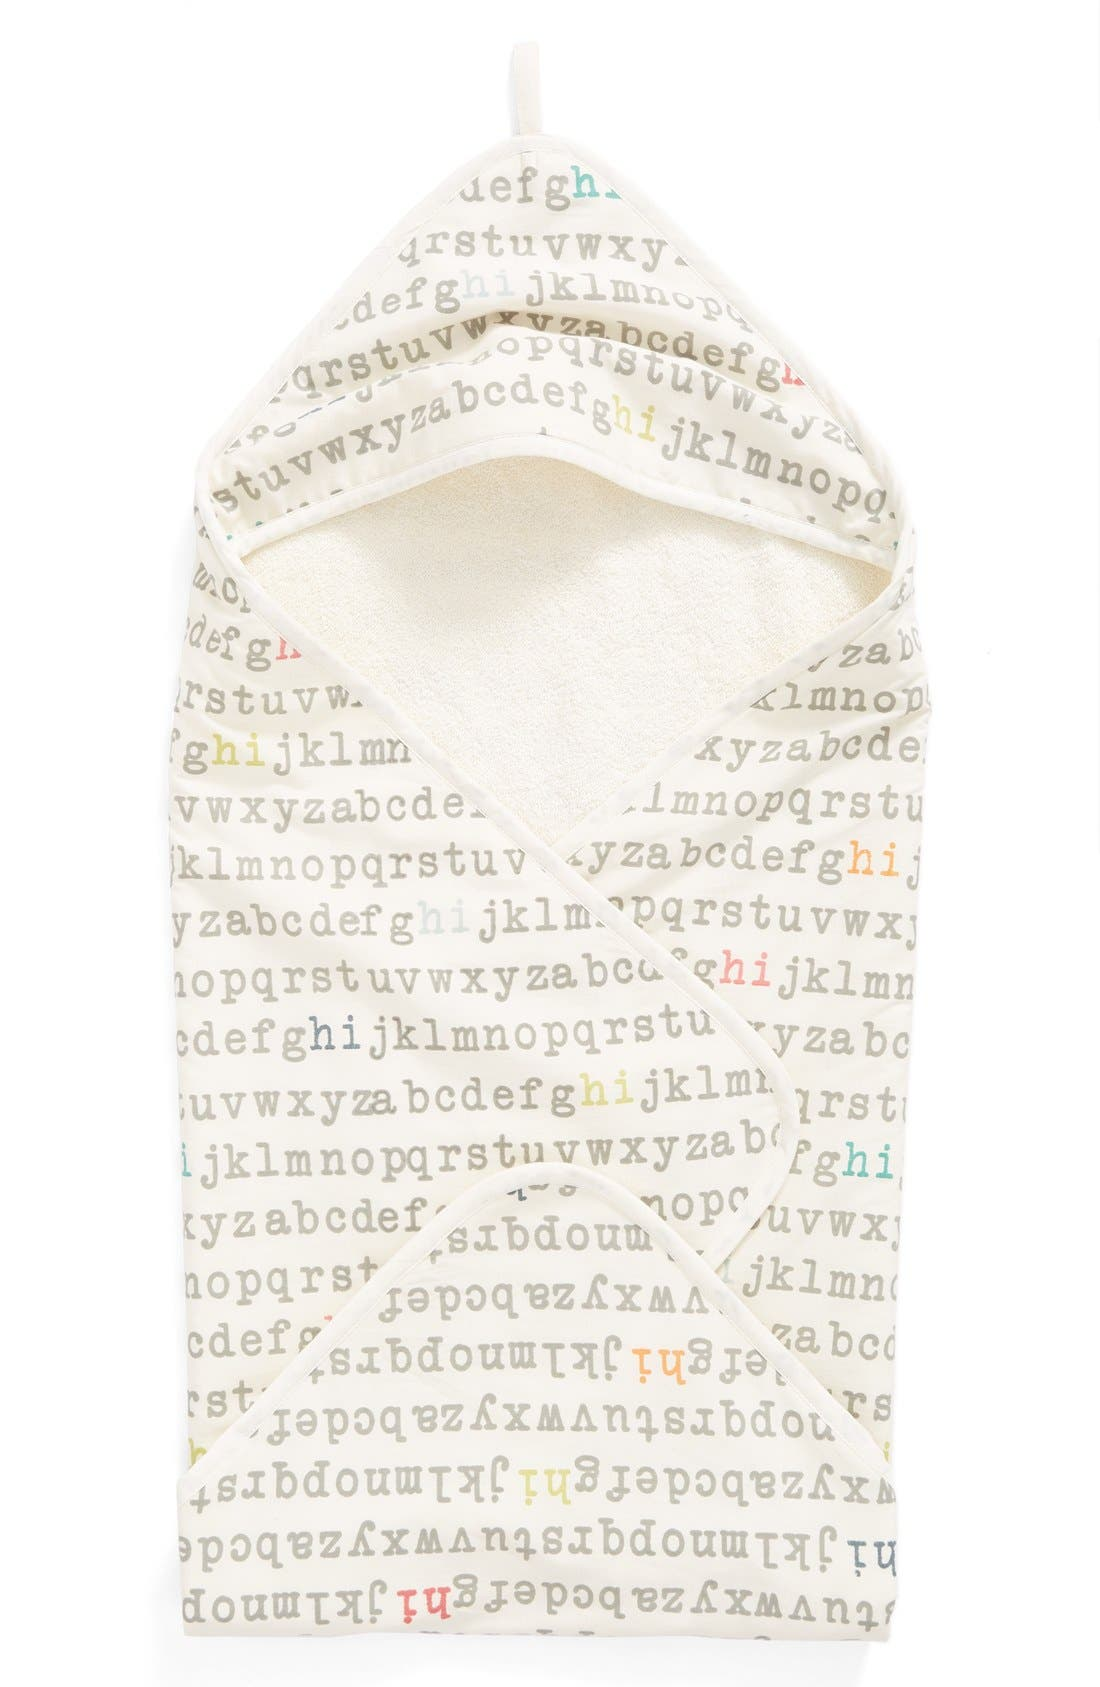 Alternate Image 1 Selected - Petit Pehr 'Alphabet' Print Hooded Towel (Baby) (Nordstrom Exclusive)